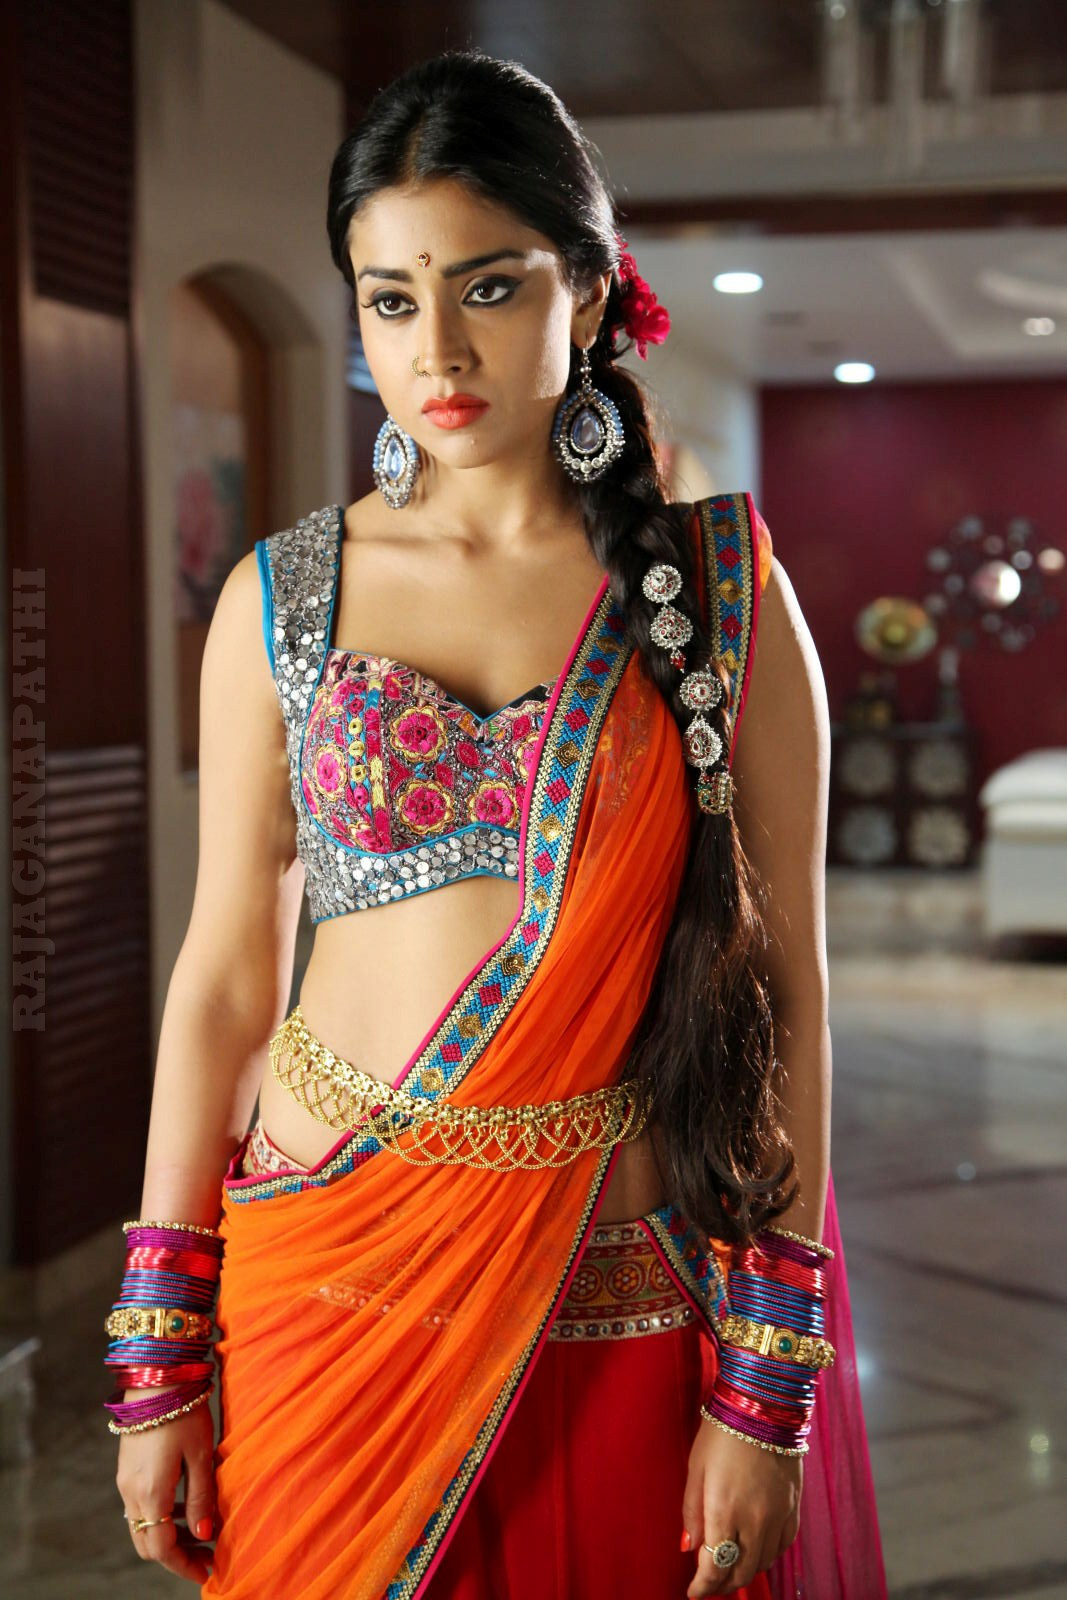 Actress Shriya Saran In Saree New Hot Hq Photos Collection -6191